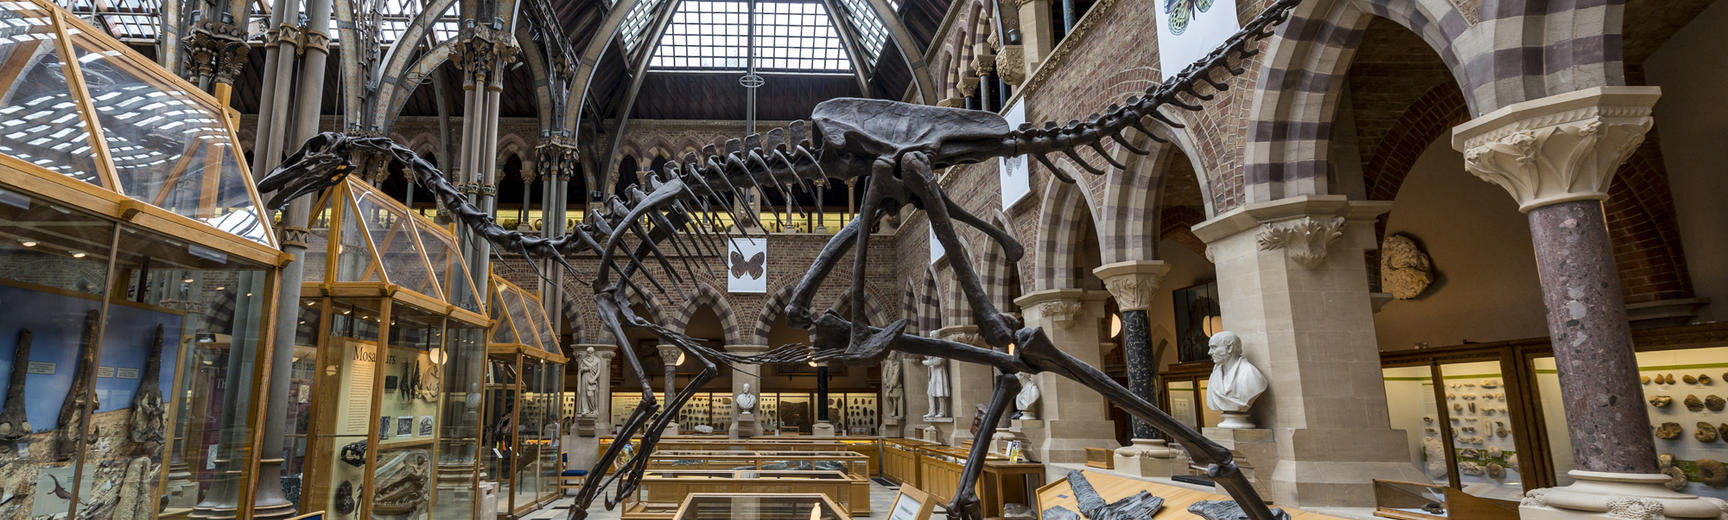 A dinosaur sekelton in the Natural History Museum, Oxford